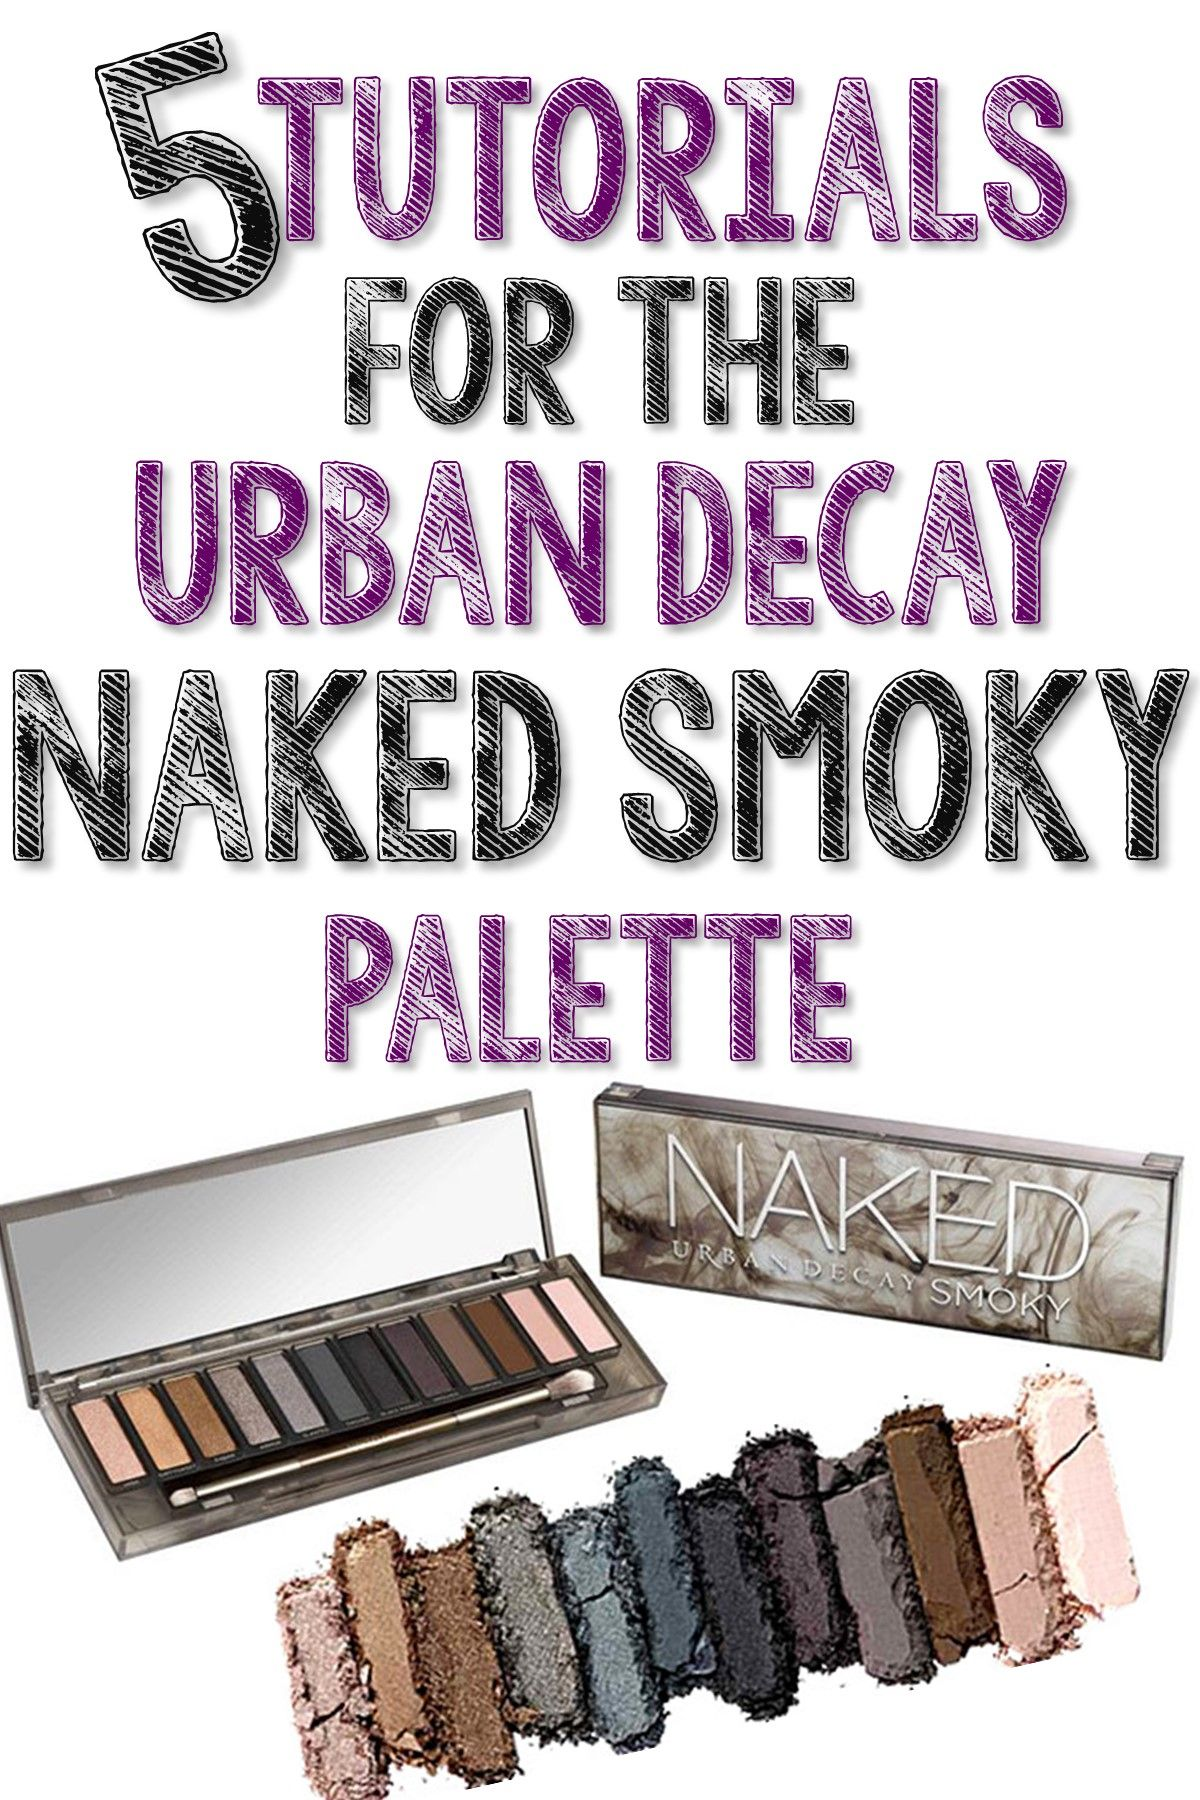 Naked Eyes Neutral Eyeshadow Guide: Urban Decay Smoky Palette Tutorials